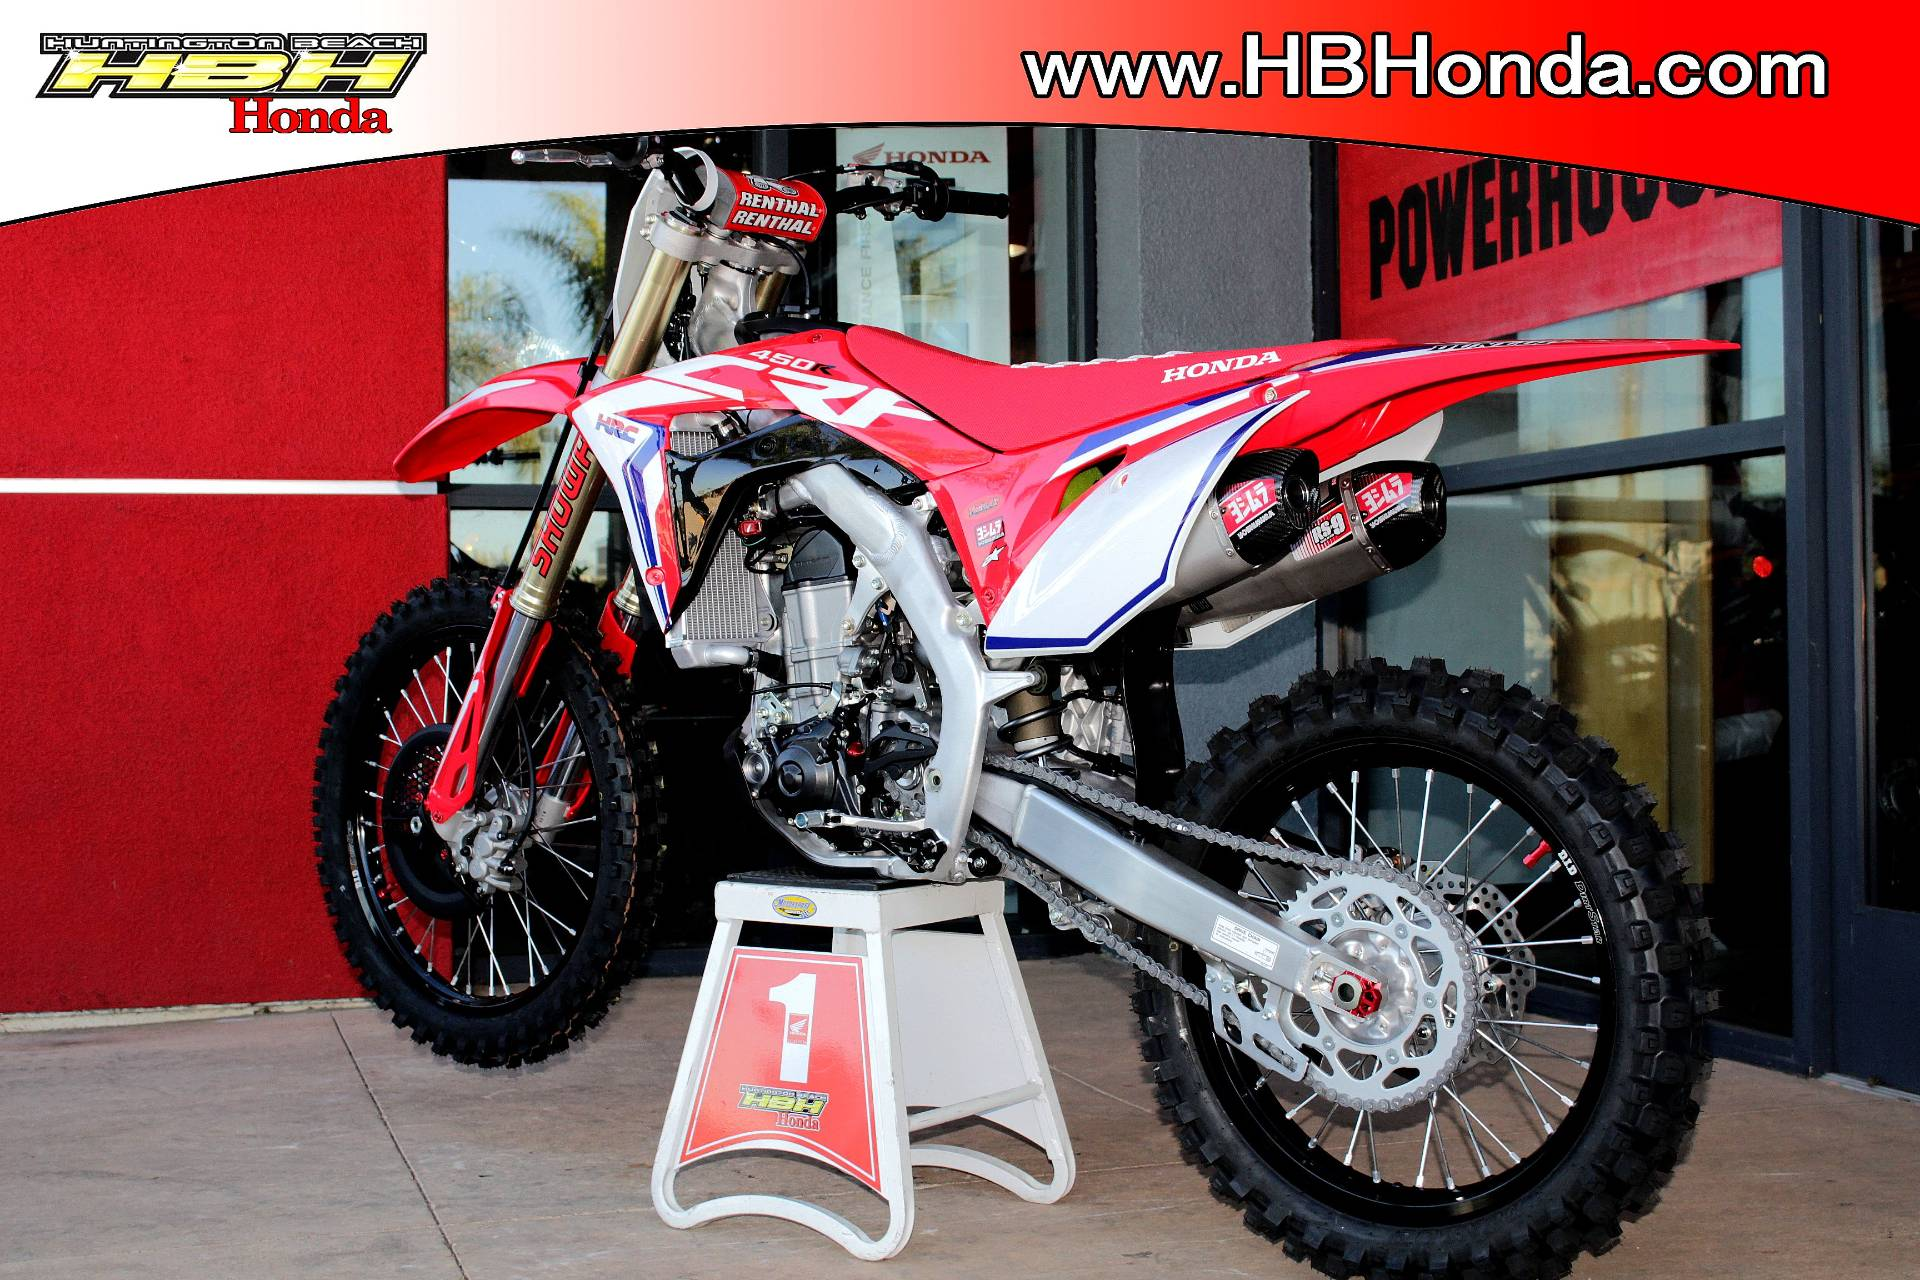 New 2019 Honda Crf450r Motorcycles For Sale In Huntington Beach Ca